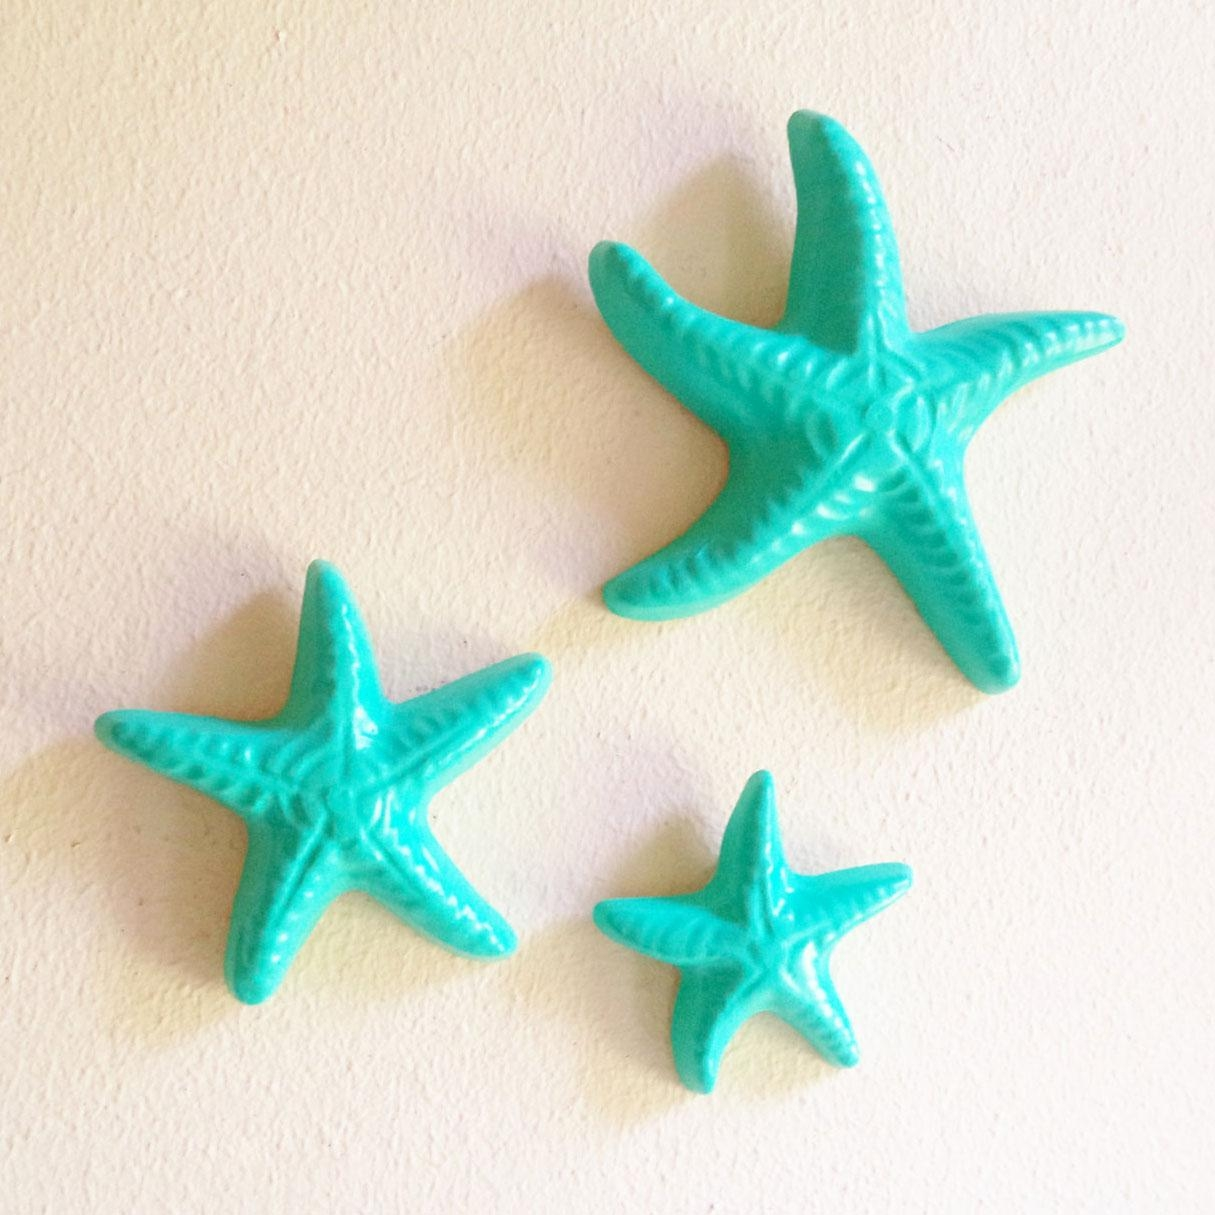 How To Do Starfish Wall Decor | Design Ideas And Decor For Large Starfish Wall Decors (Image 8 of 20)